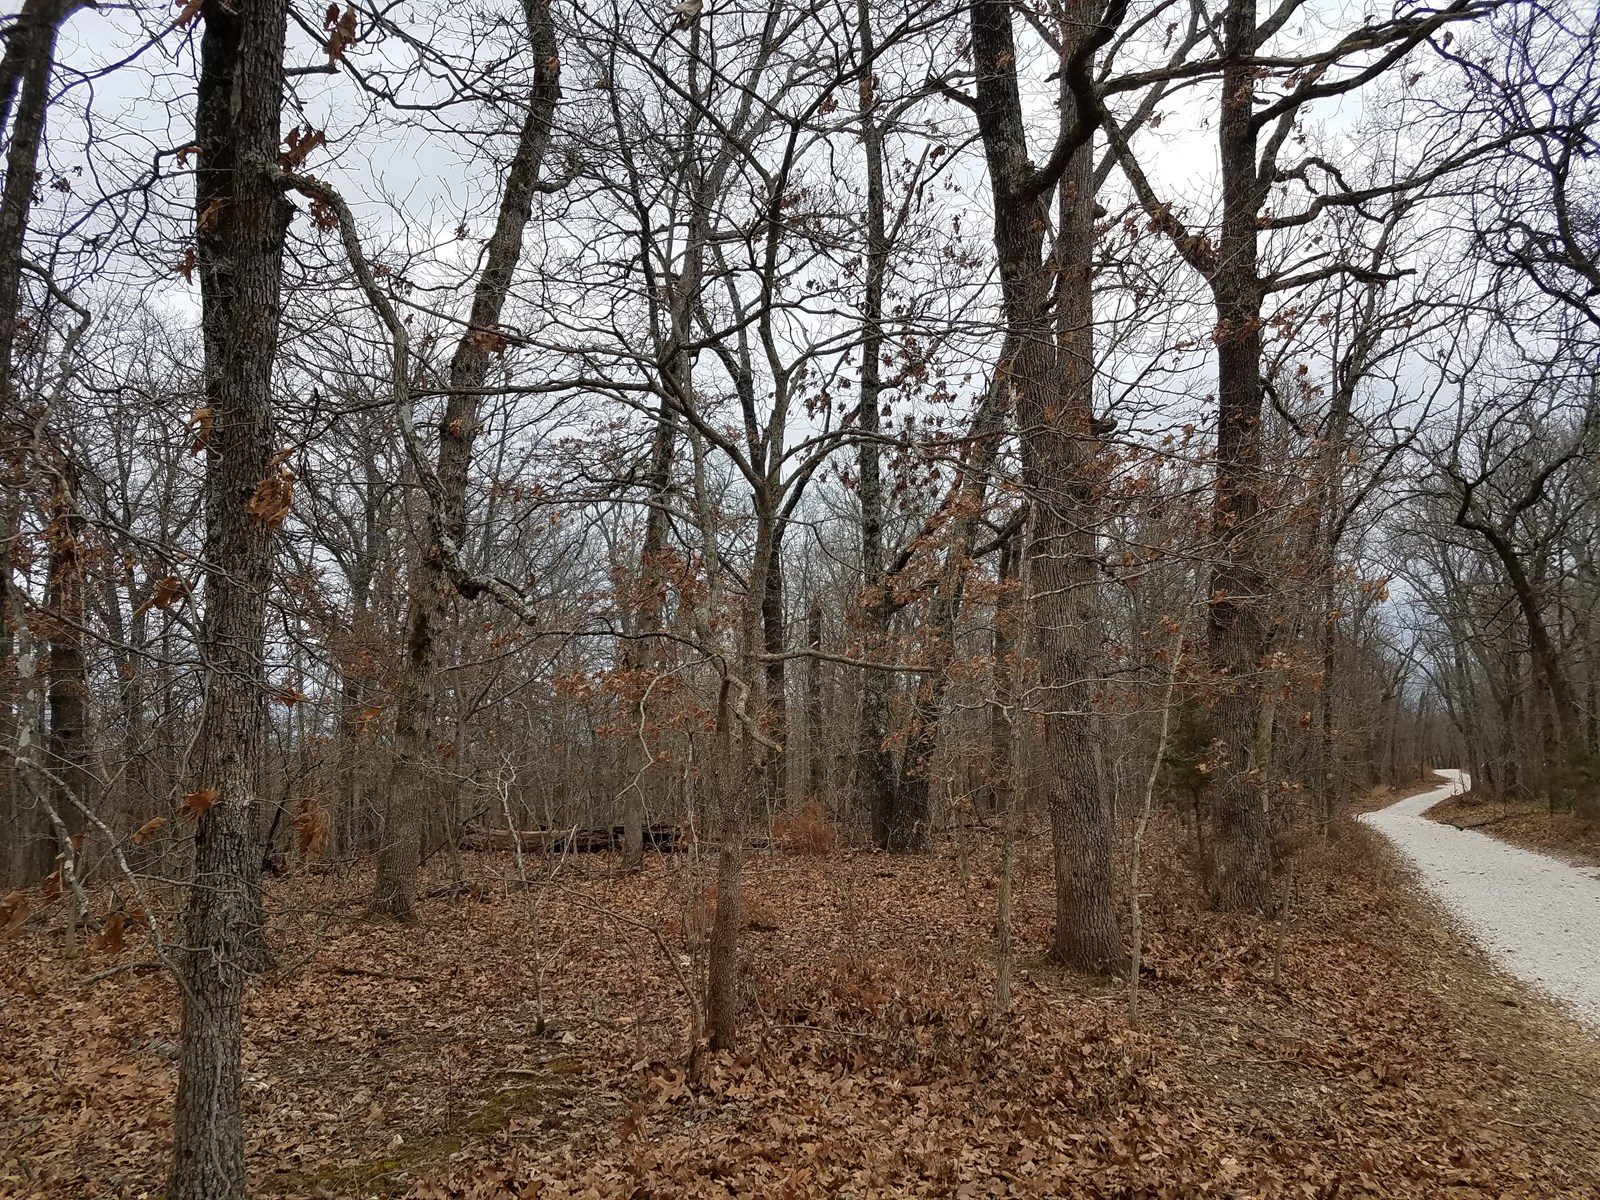 Land For Sale in Missouri! 17 Acres Land, Hunt, Camp, Build!